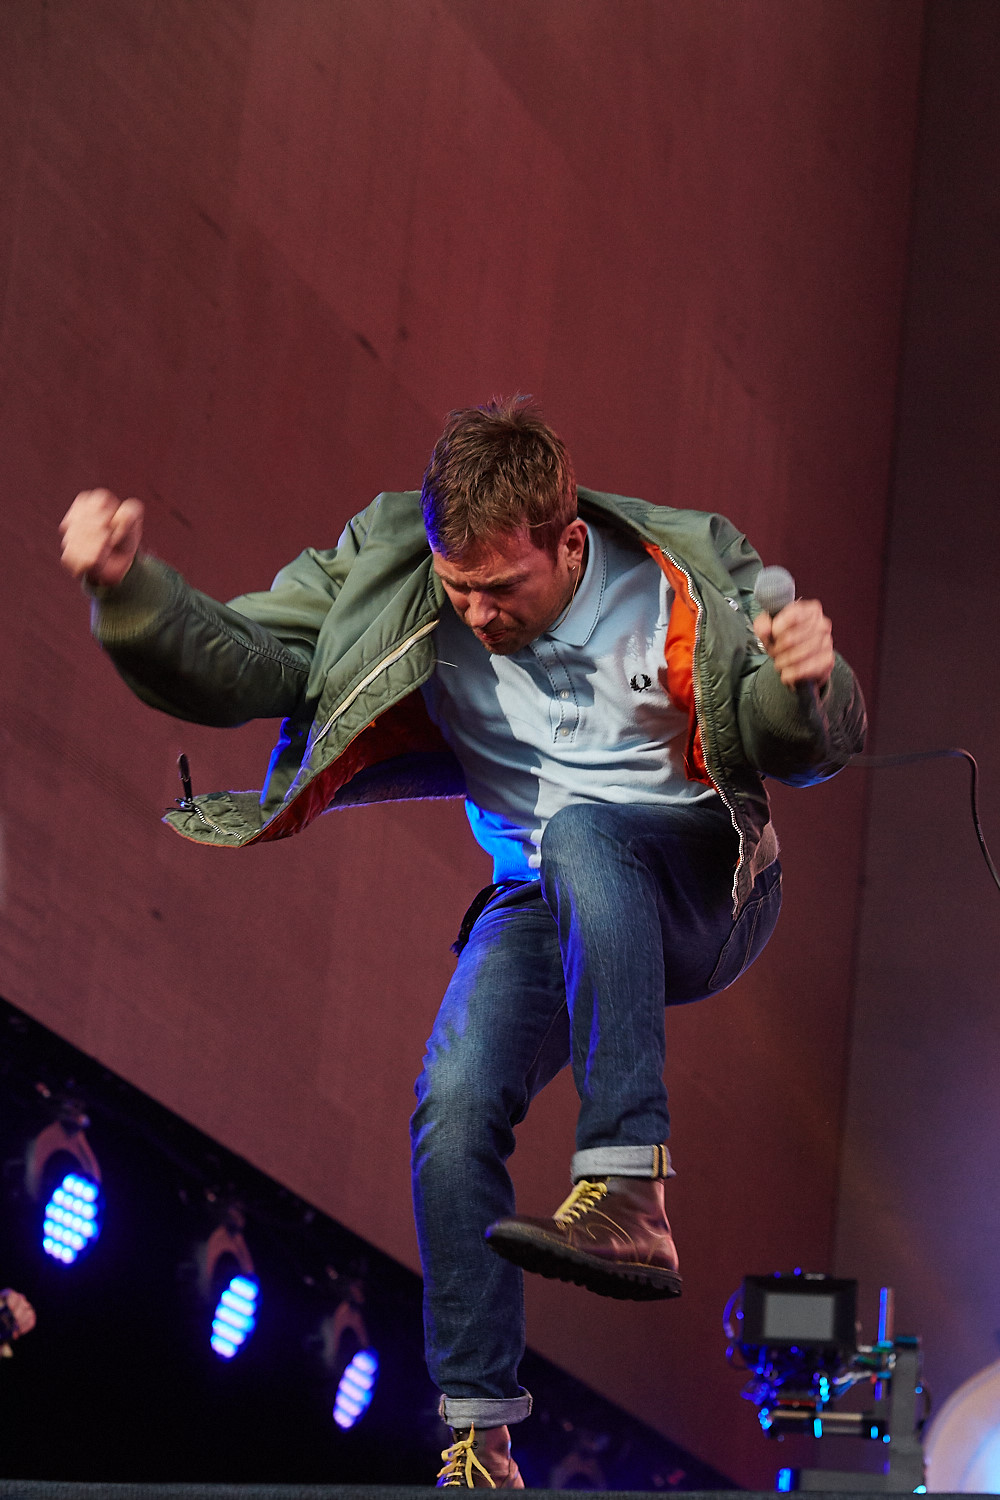 20th June 2015. Blur headline Barclaycard British Summertime in London's Hyde Park.